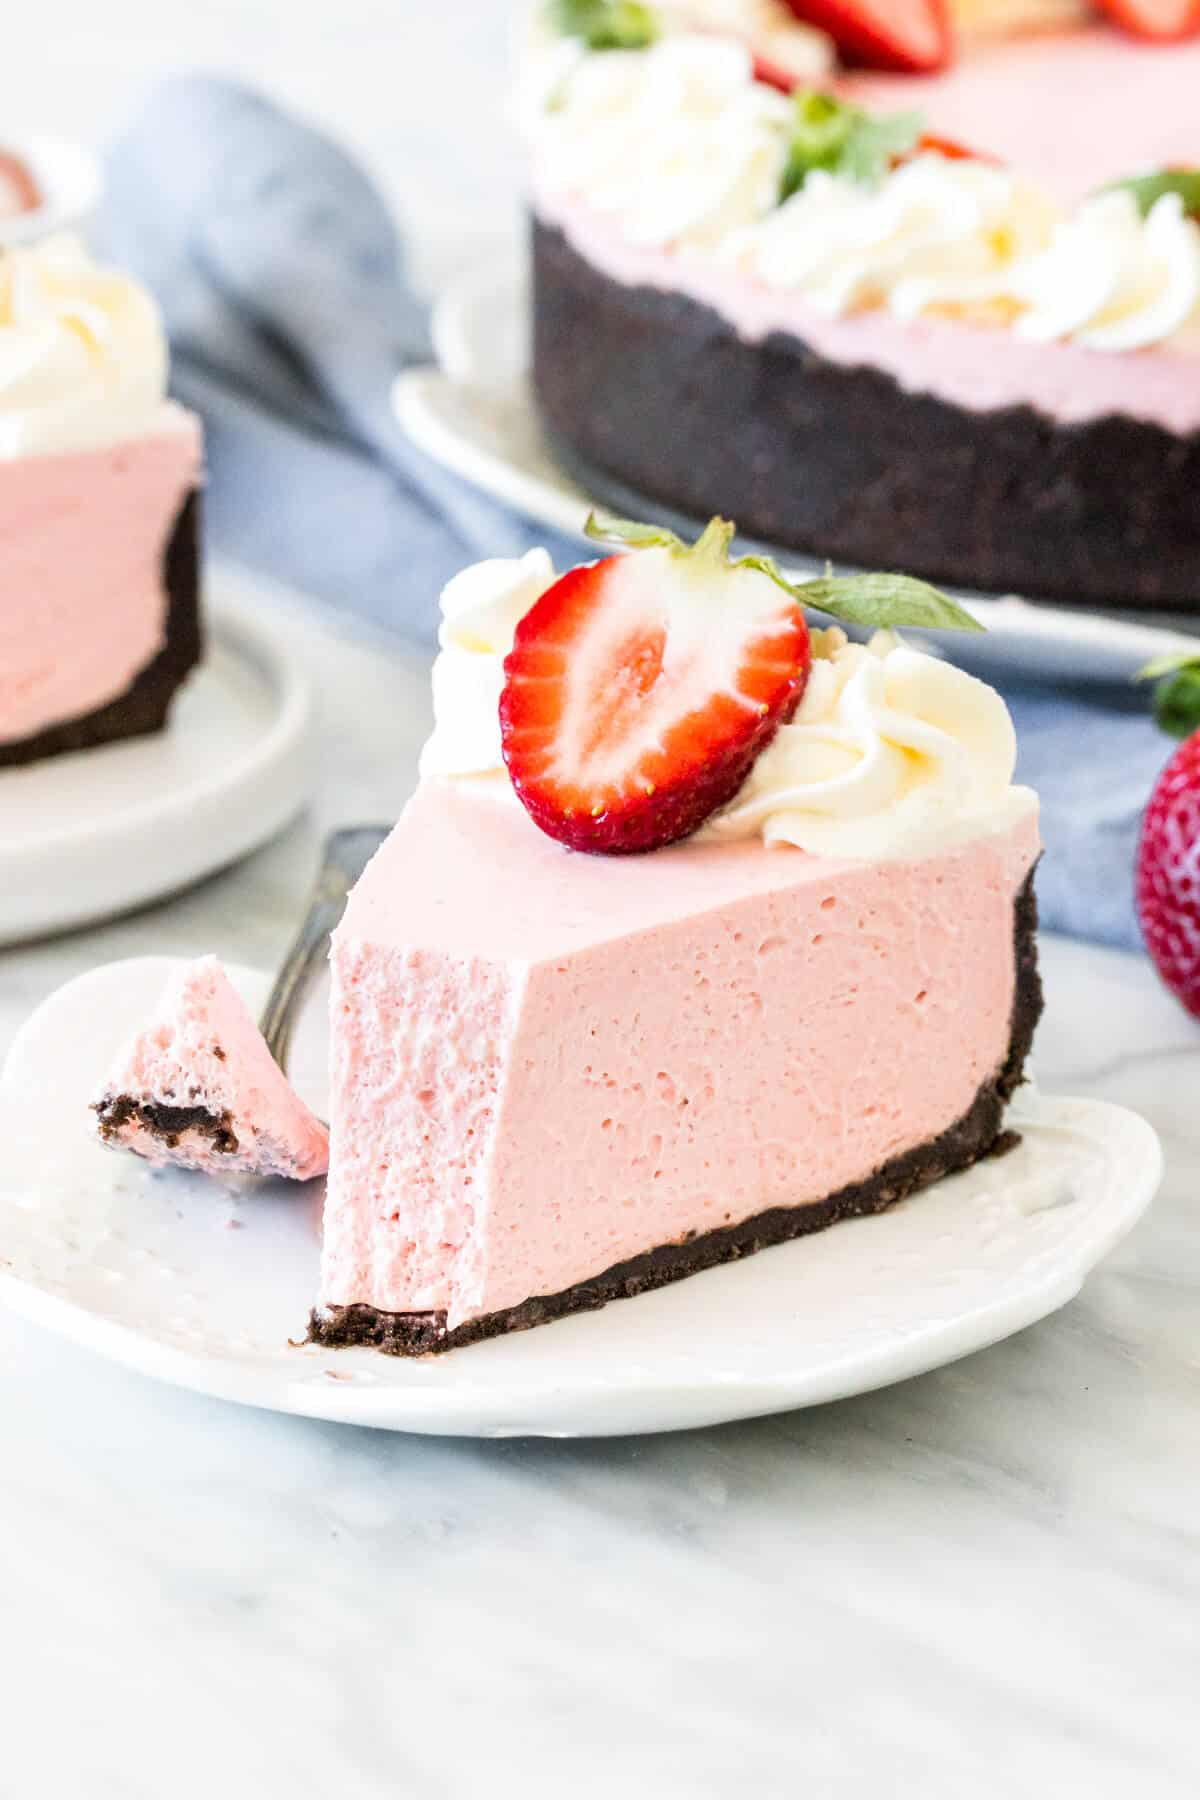 A slice of no-bake strawberry cheesecake with Oreo crust.